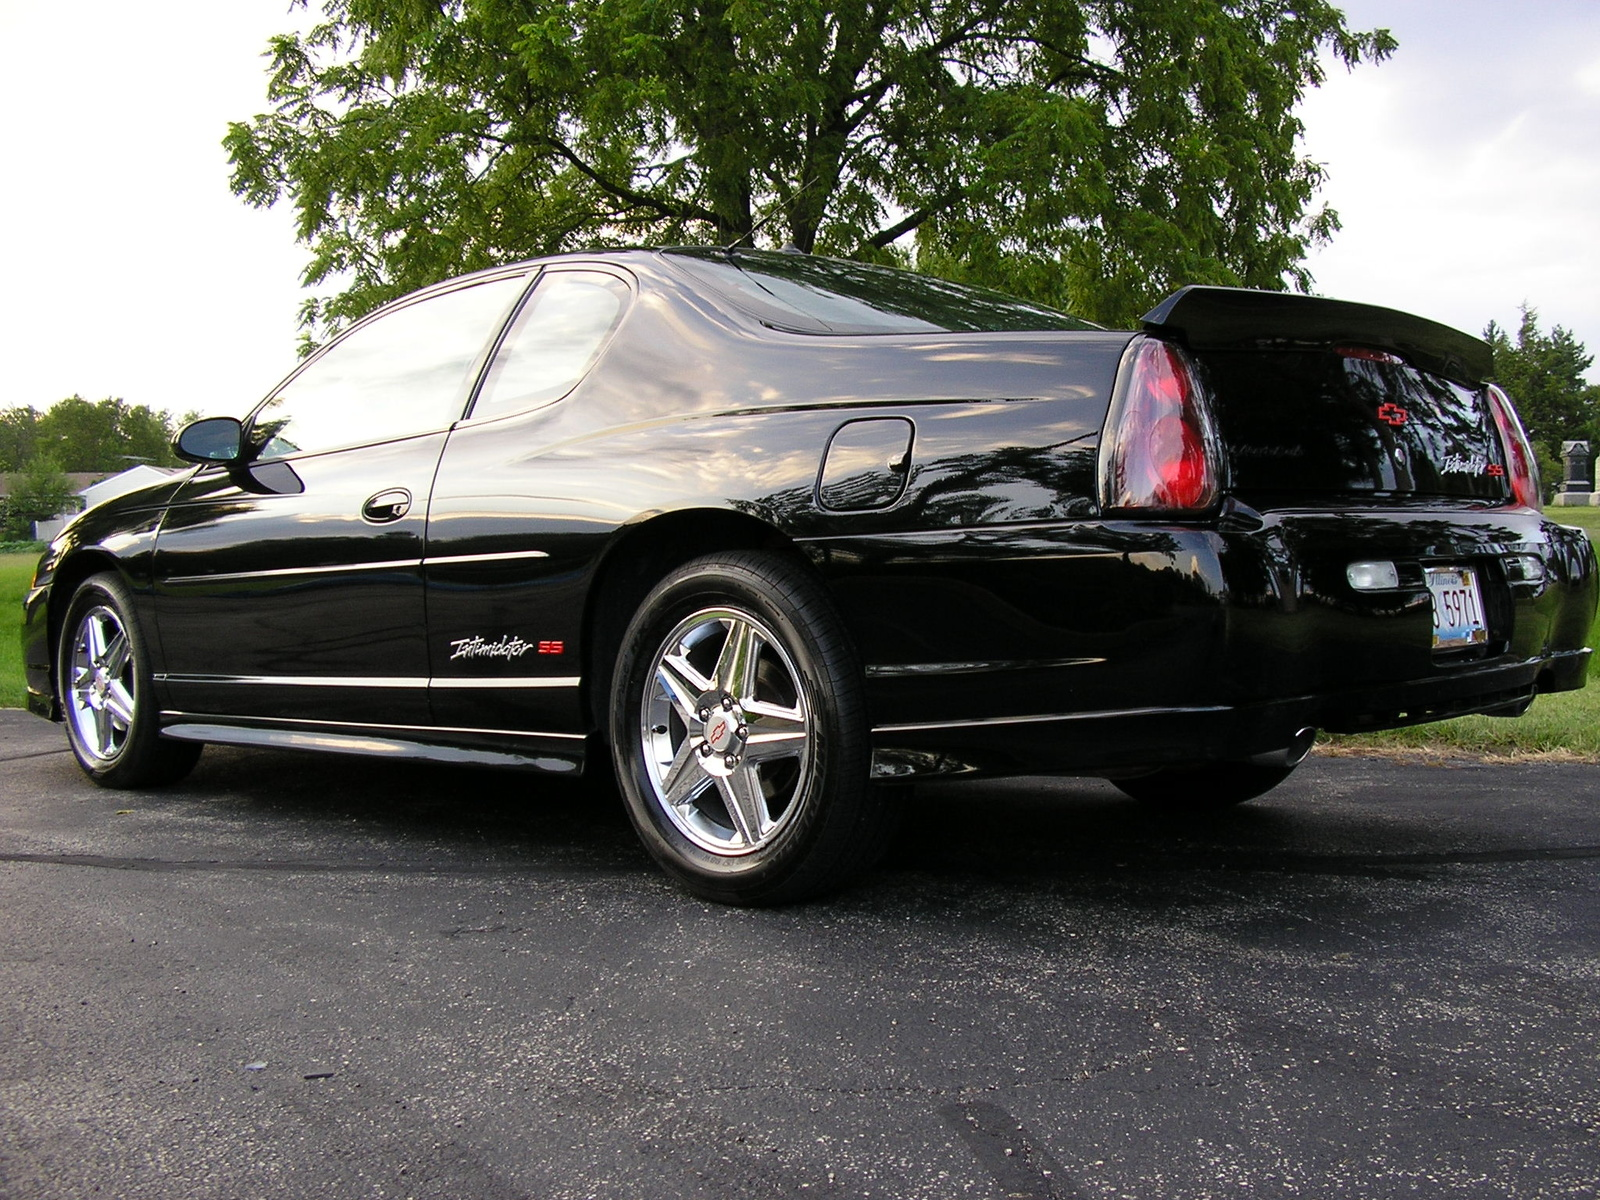 2004 chevrolet monte carlo supercharged ss related 2004 monte carlo ss for sale 2004 monte carlo ss for sale